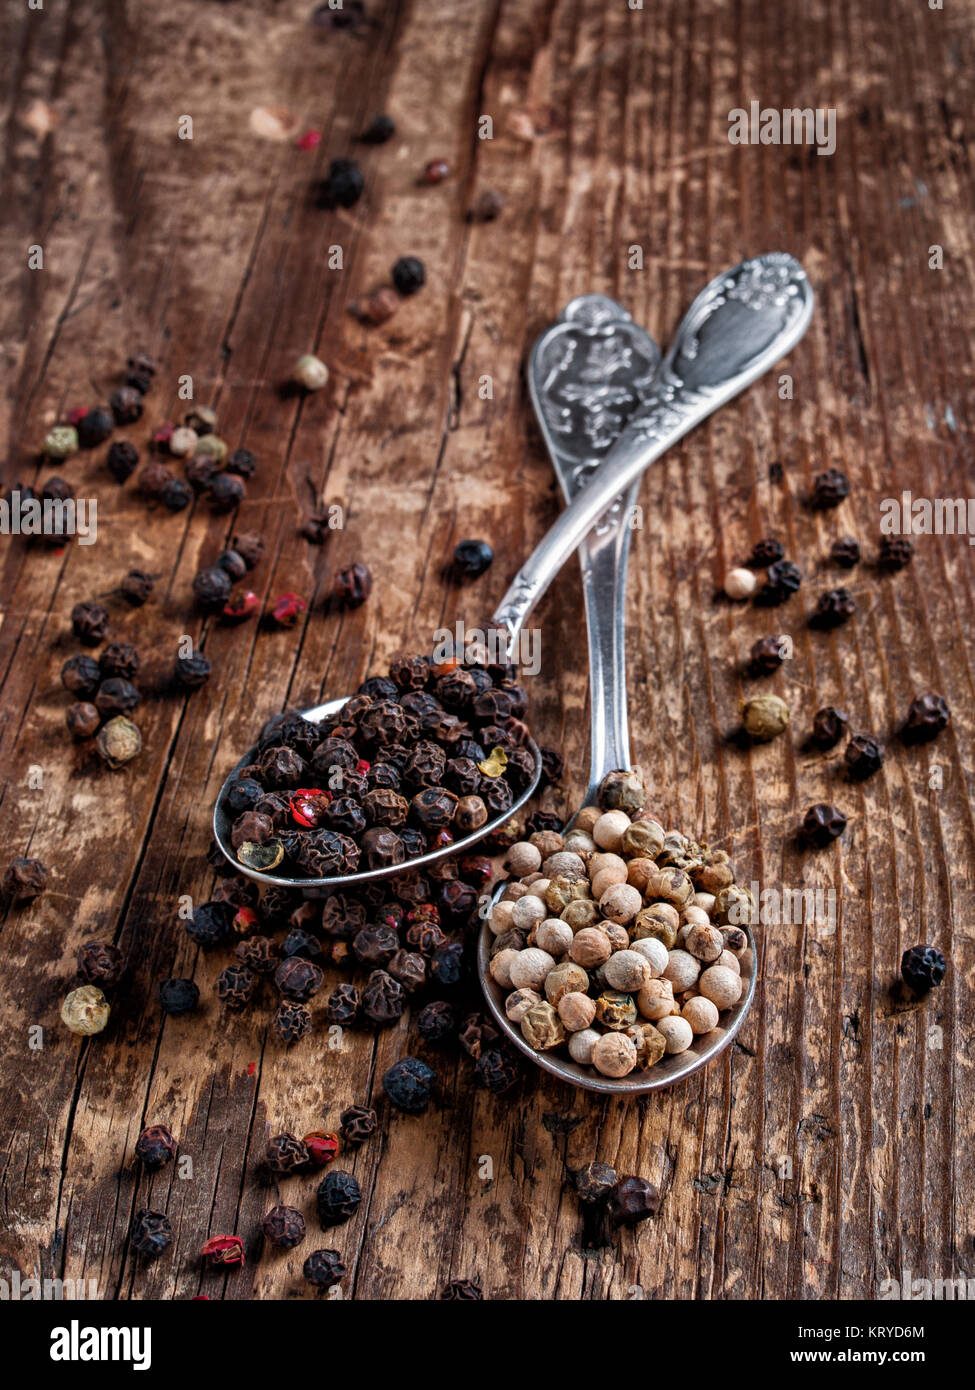 Spice pepper peas dry black and white fragrant, fragrant, dry for cooking poured in two spoons lies on a wooden - Stock Image